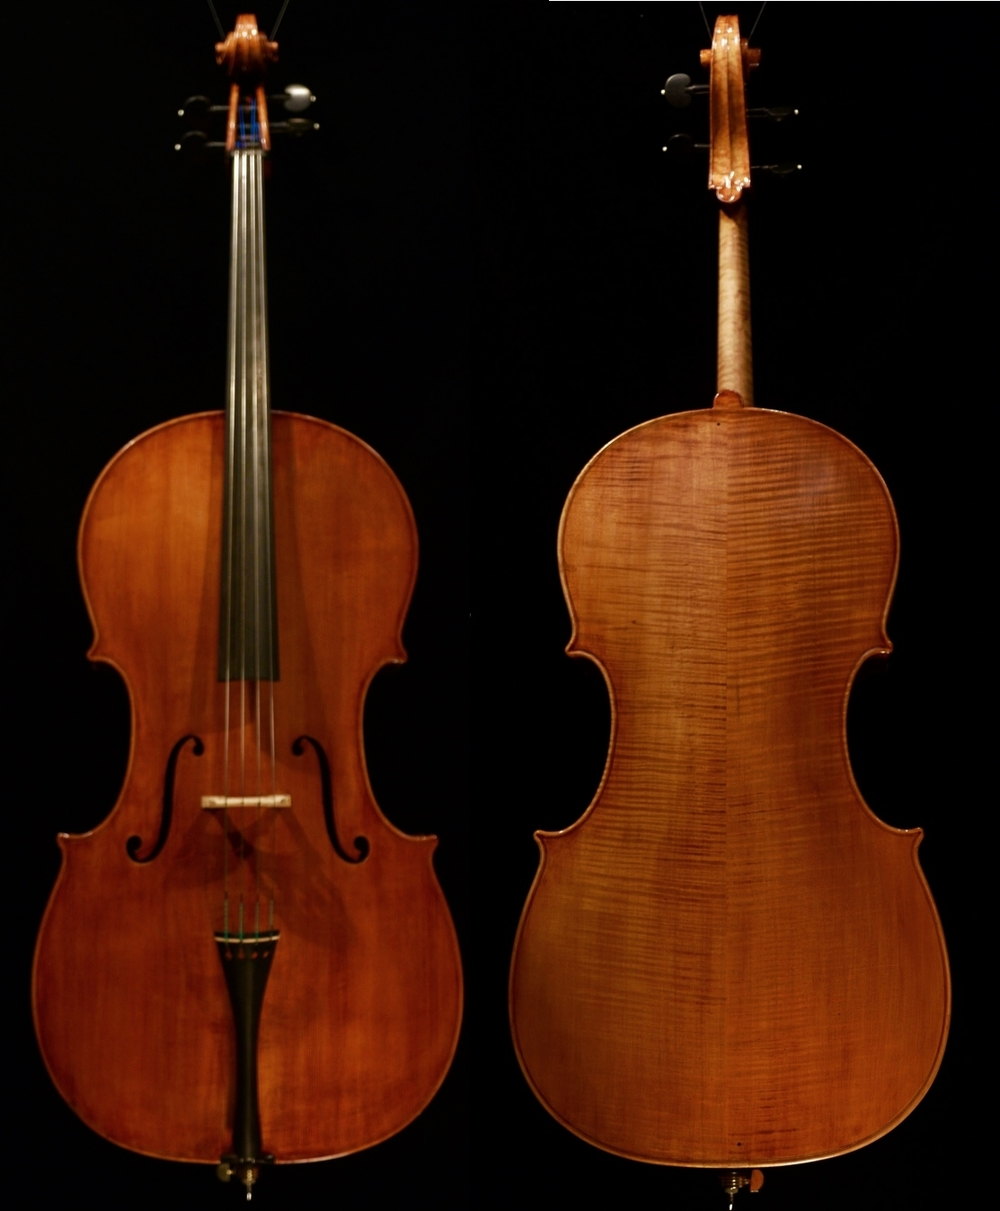 Pictured    here    is    the     K e i t h     H i l l     cello    opus     4 6 5     in   the   quartet